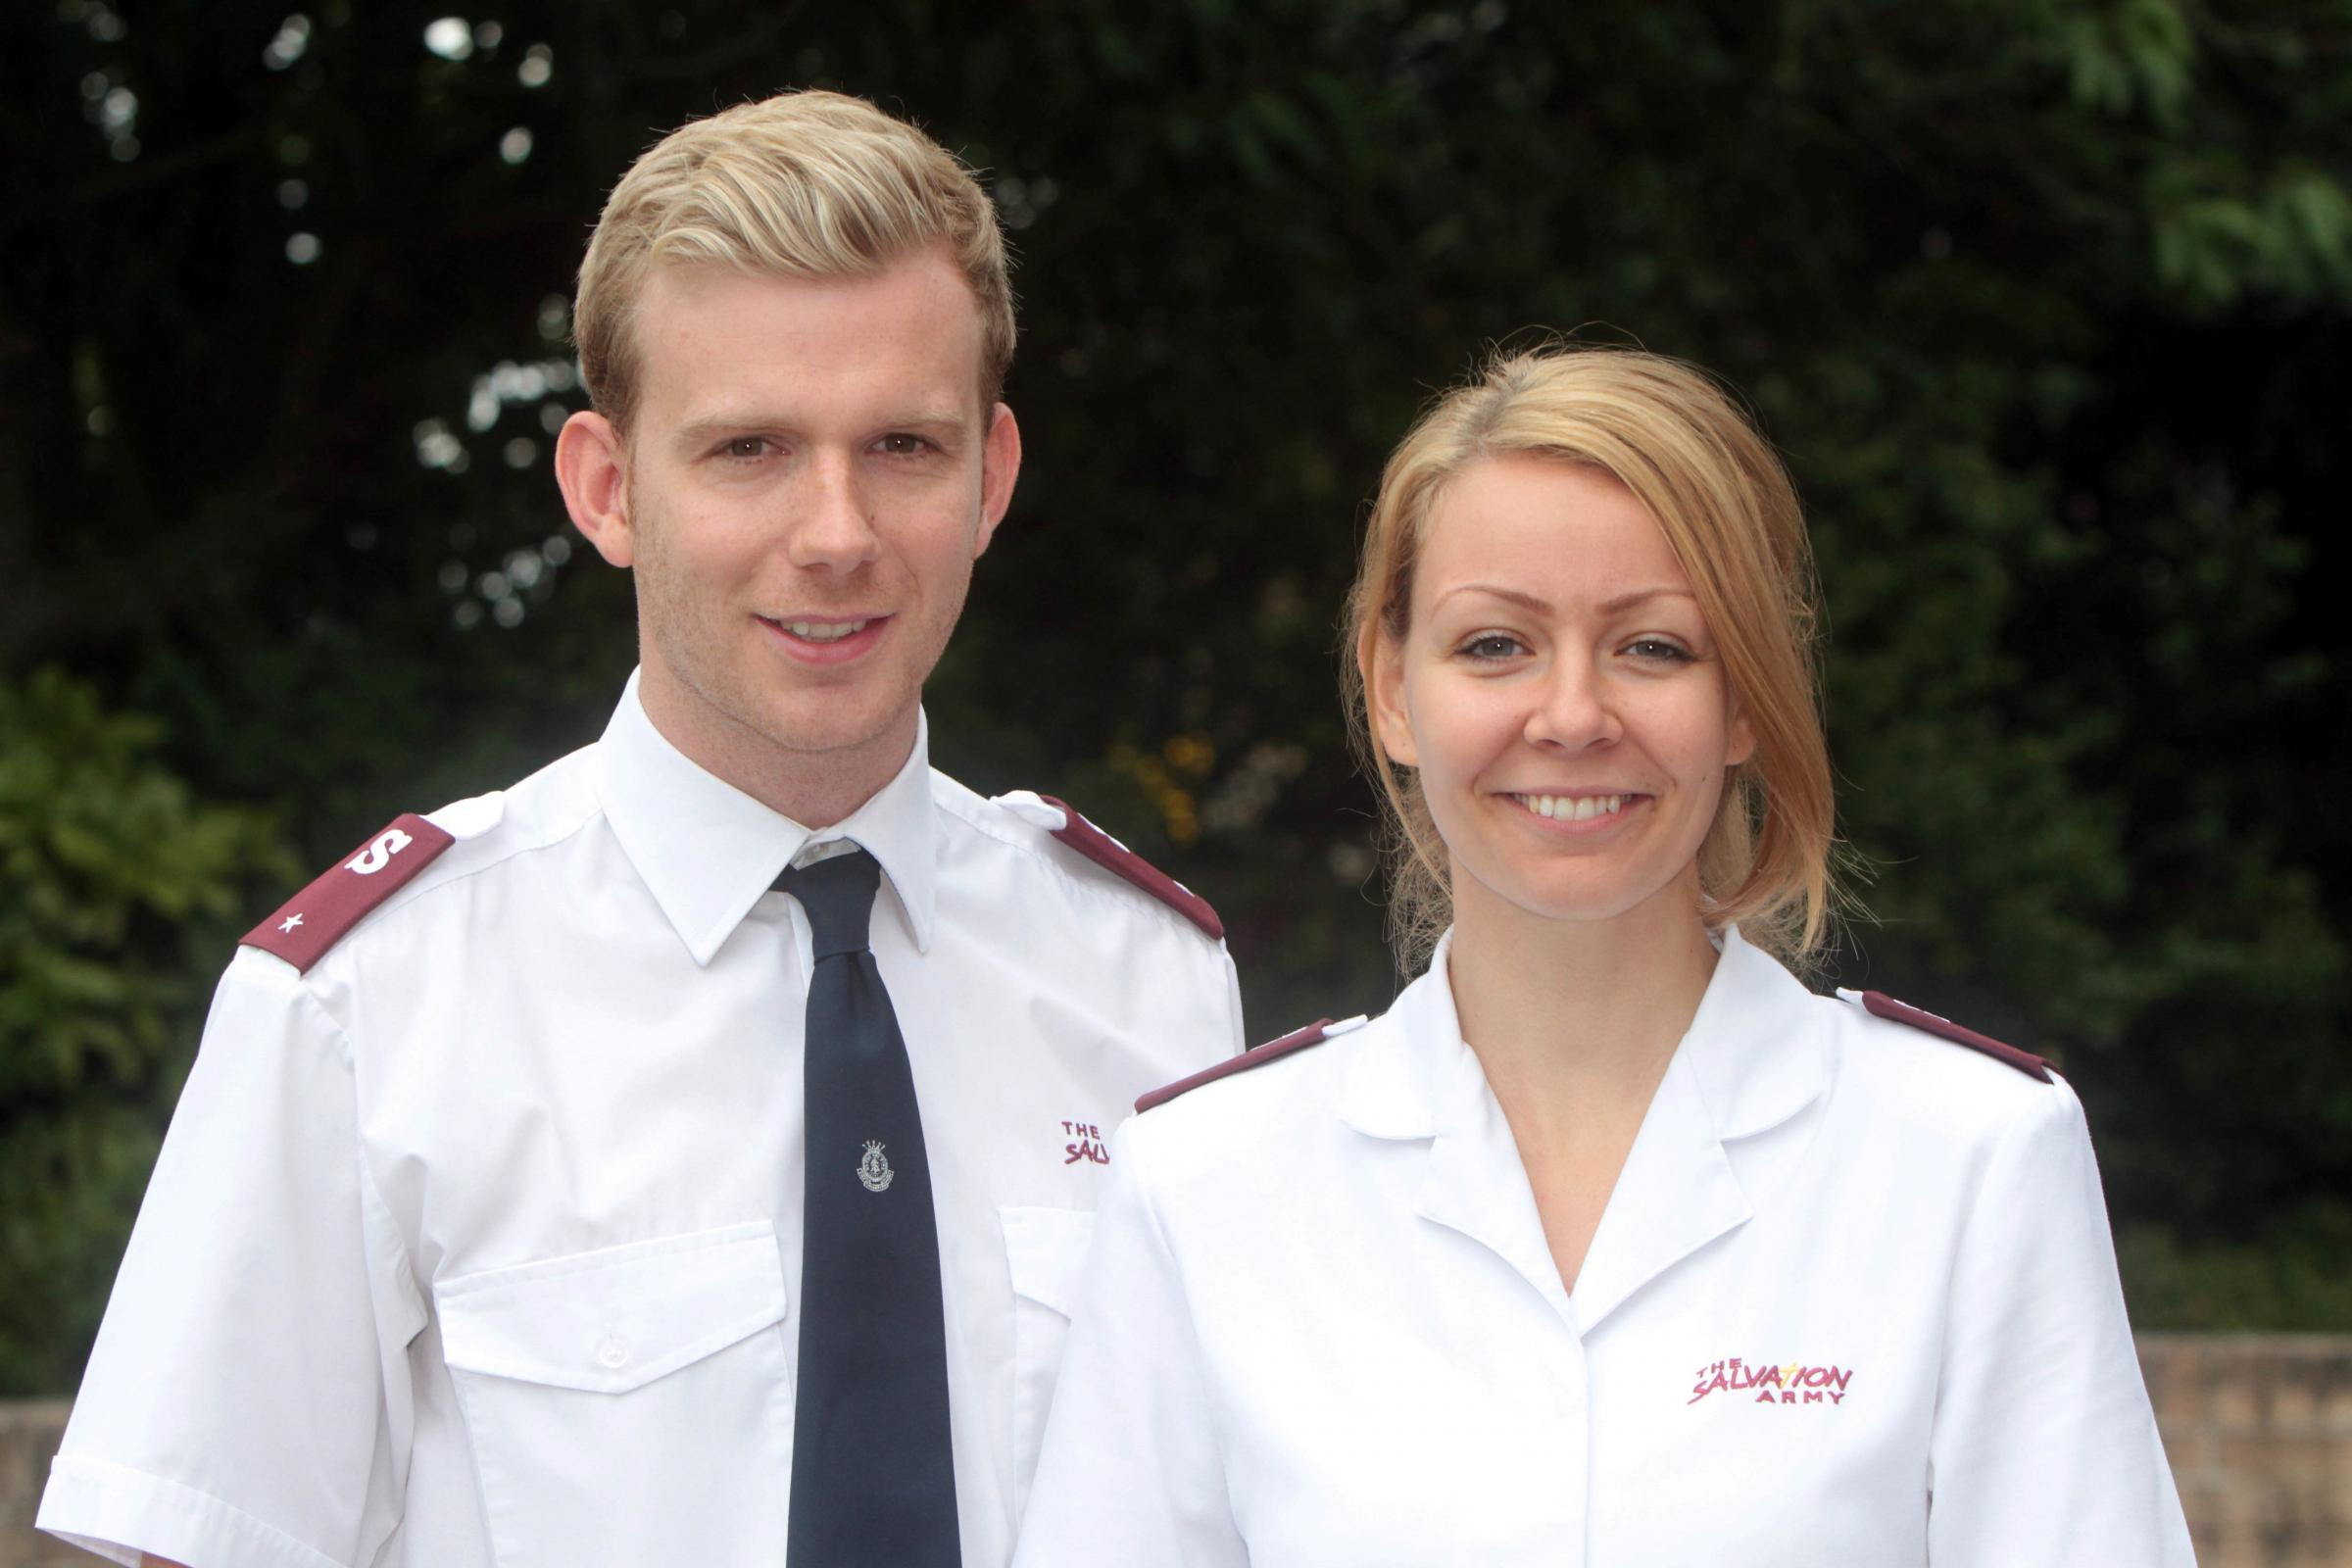 New lieutenants arrive for Keighley's Salvation Army branch